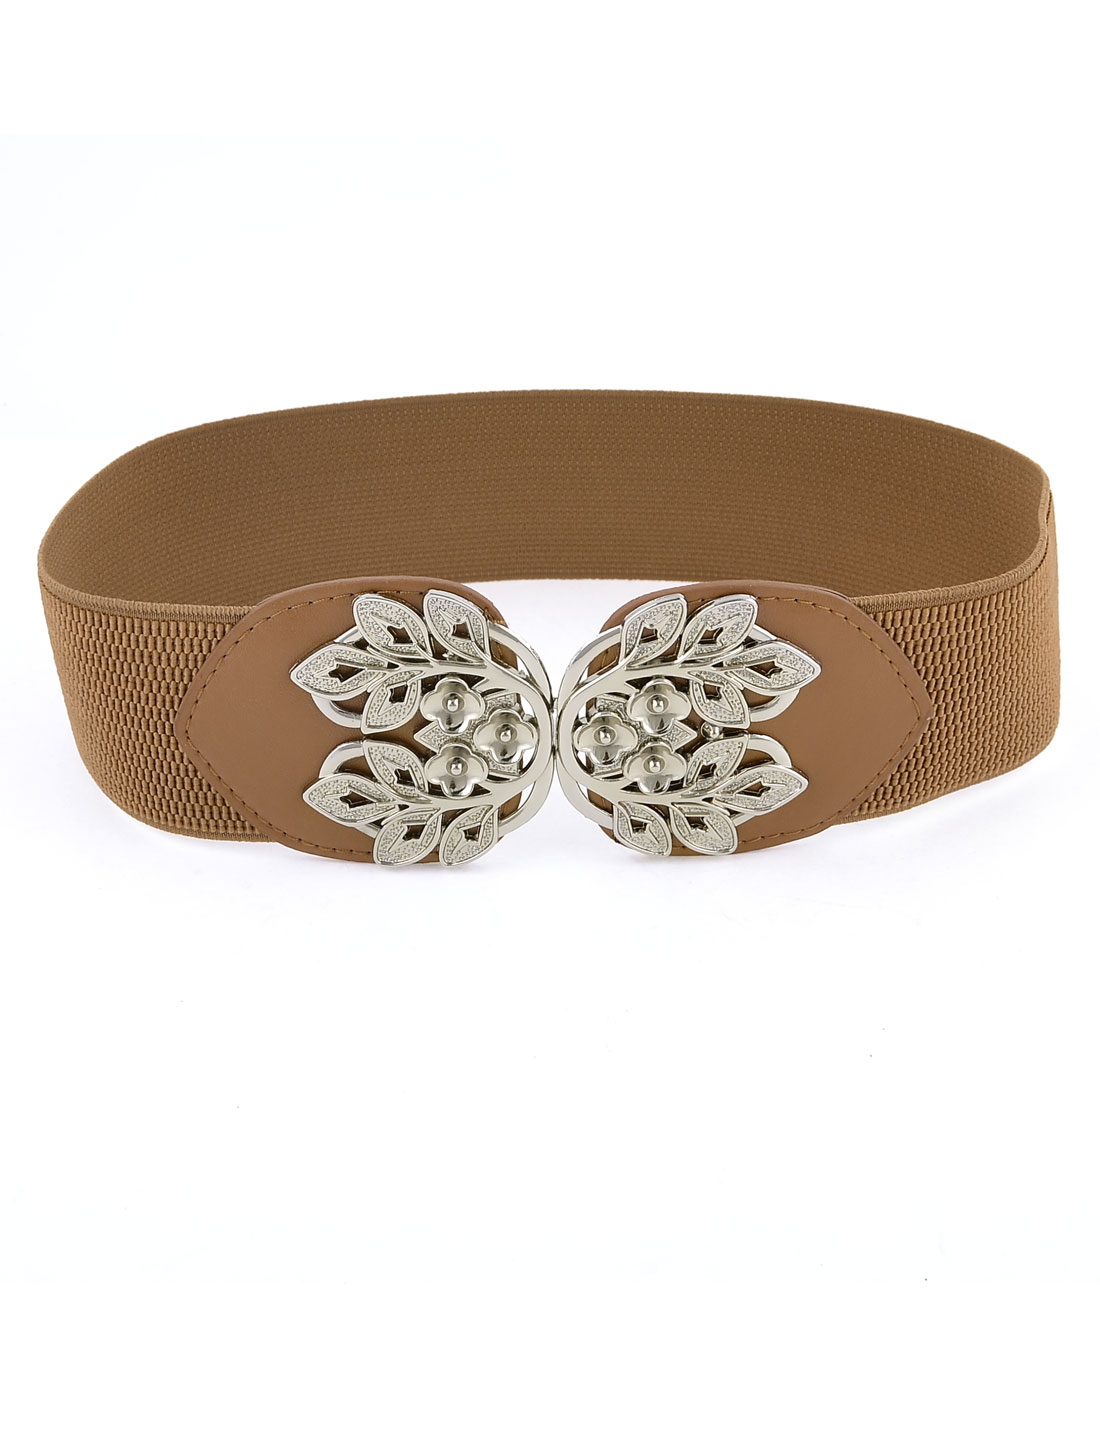 Women-Flower-Shape-Interlocking-Buckle-Elastic-Cinch-Waist-Belt-Brown